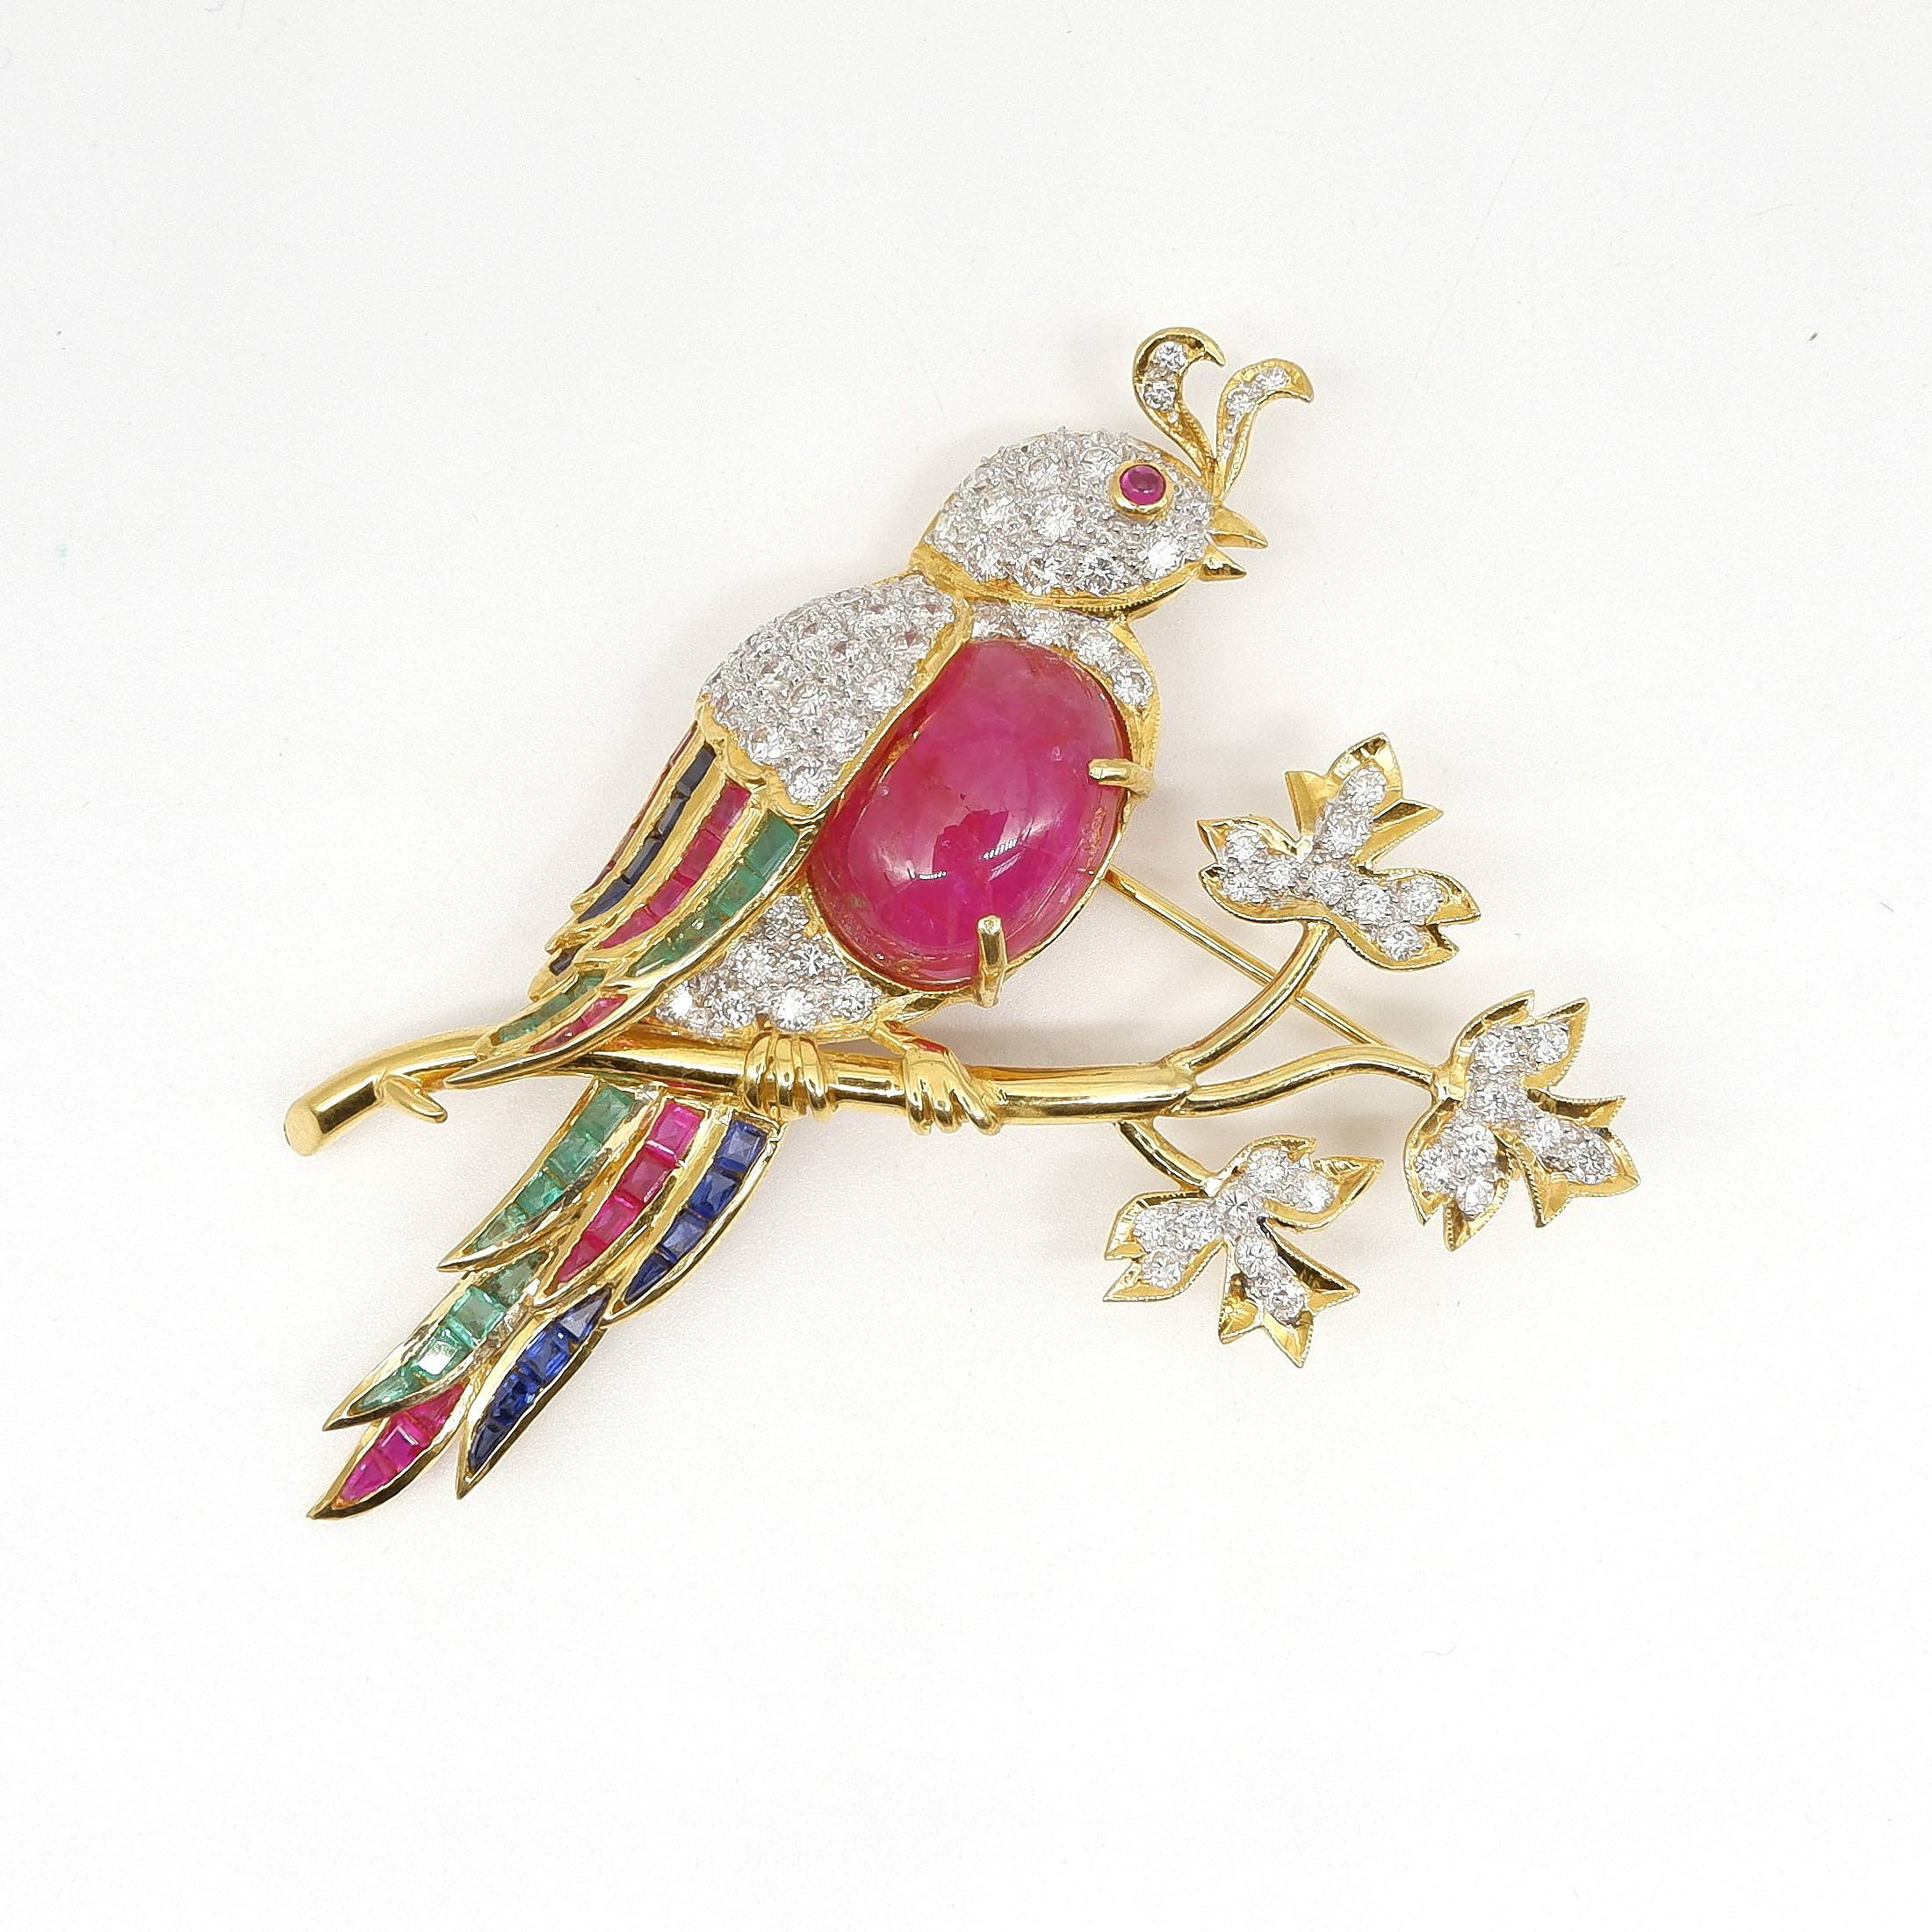 'Superb 18ct Yellow Gold Bird Brooch with Diamonds, Rubies, Emeralds and Sapphires'